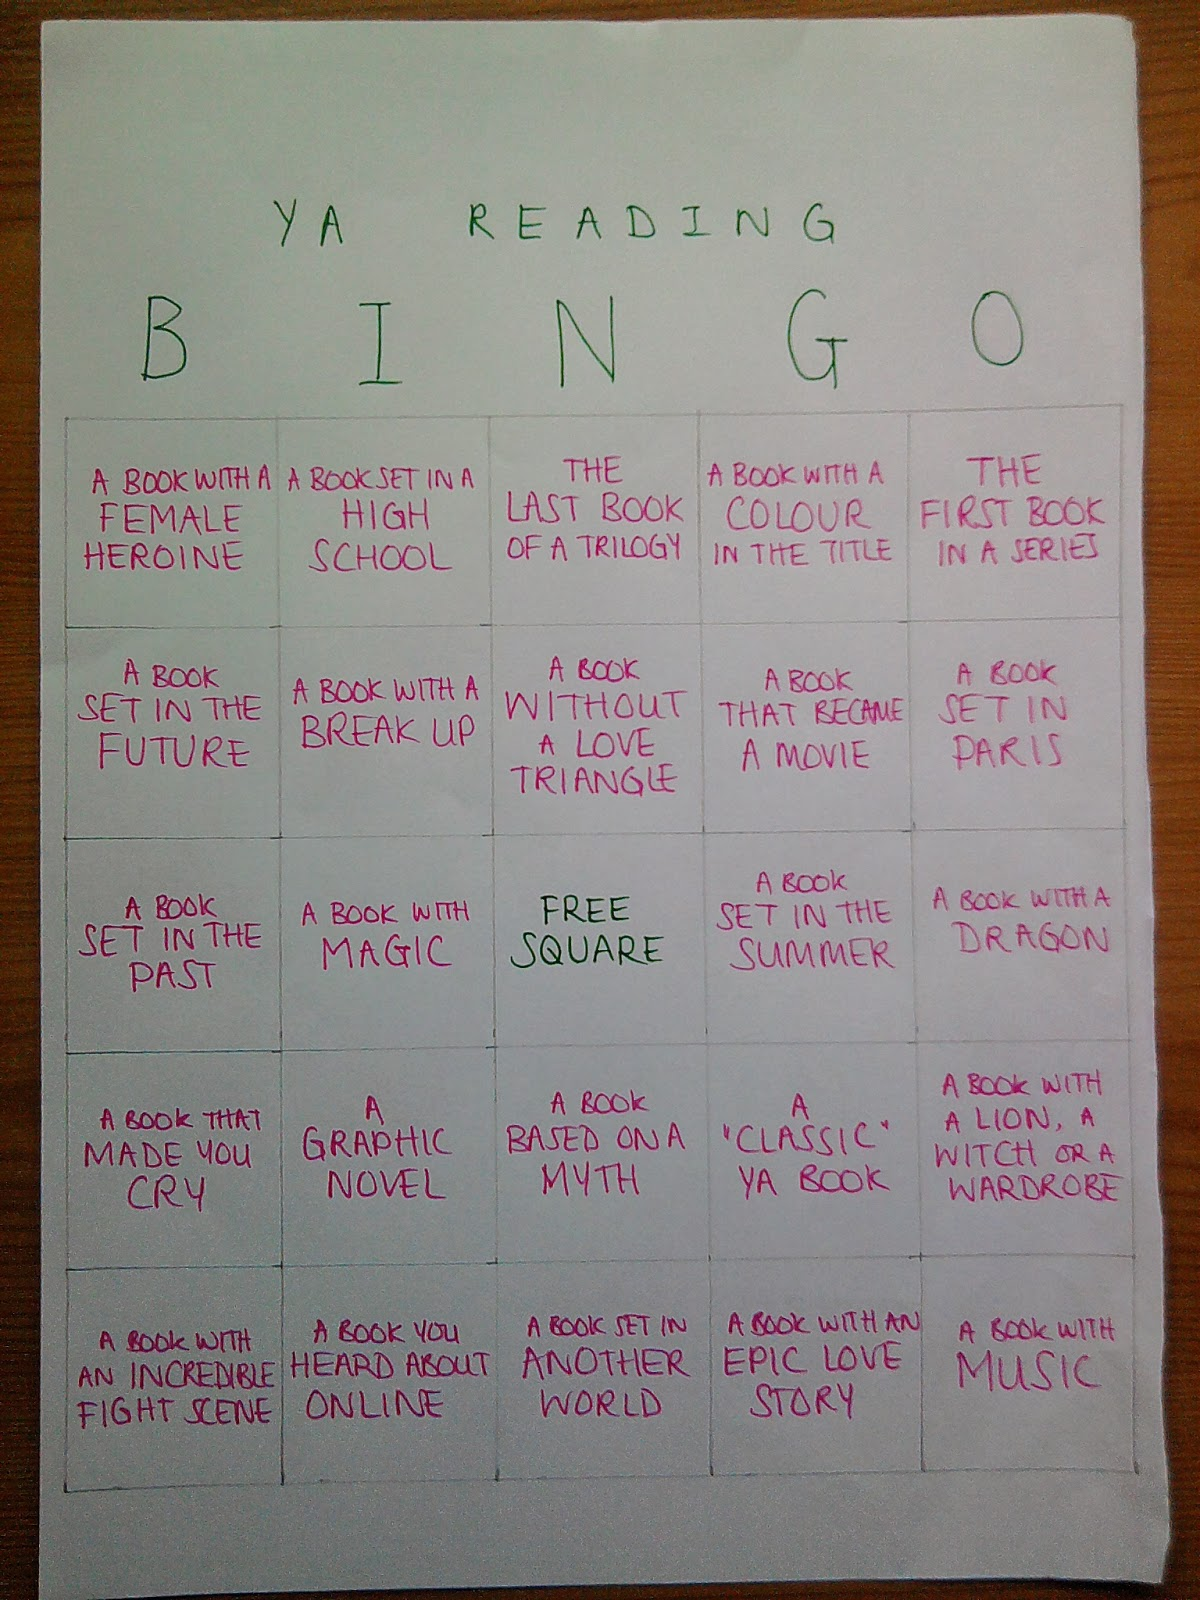 As If Reading 48 Books (not Including The 2 Free Squares) That Meet Each  Criteria Wasn't Challenging Enough, I Wanted To Make My Own Romance Version